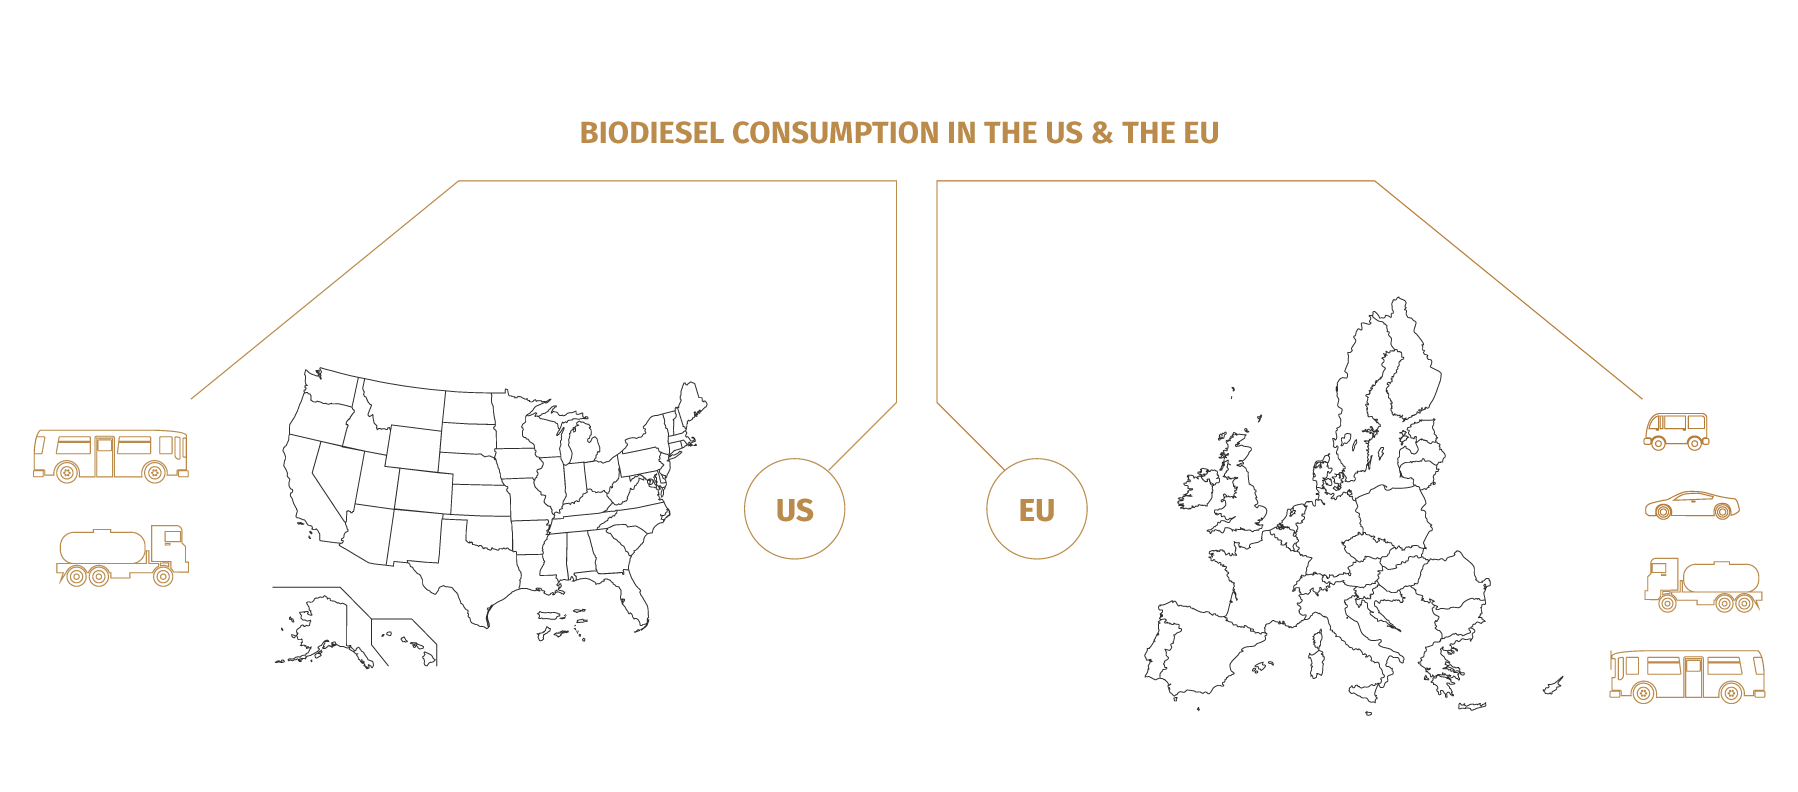 image about consumption of biodiesel in US and EU.